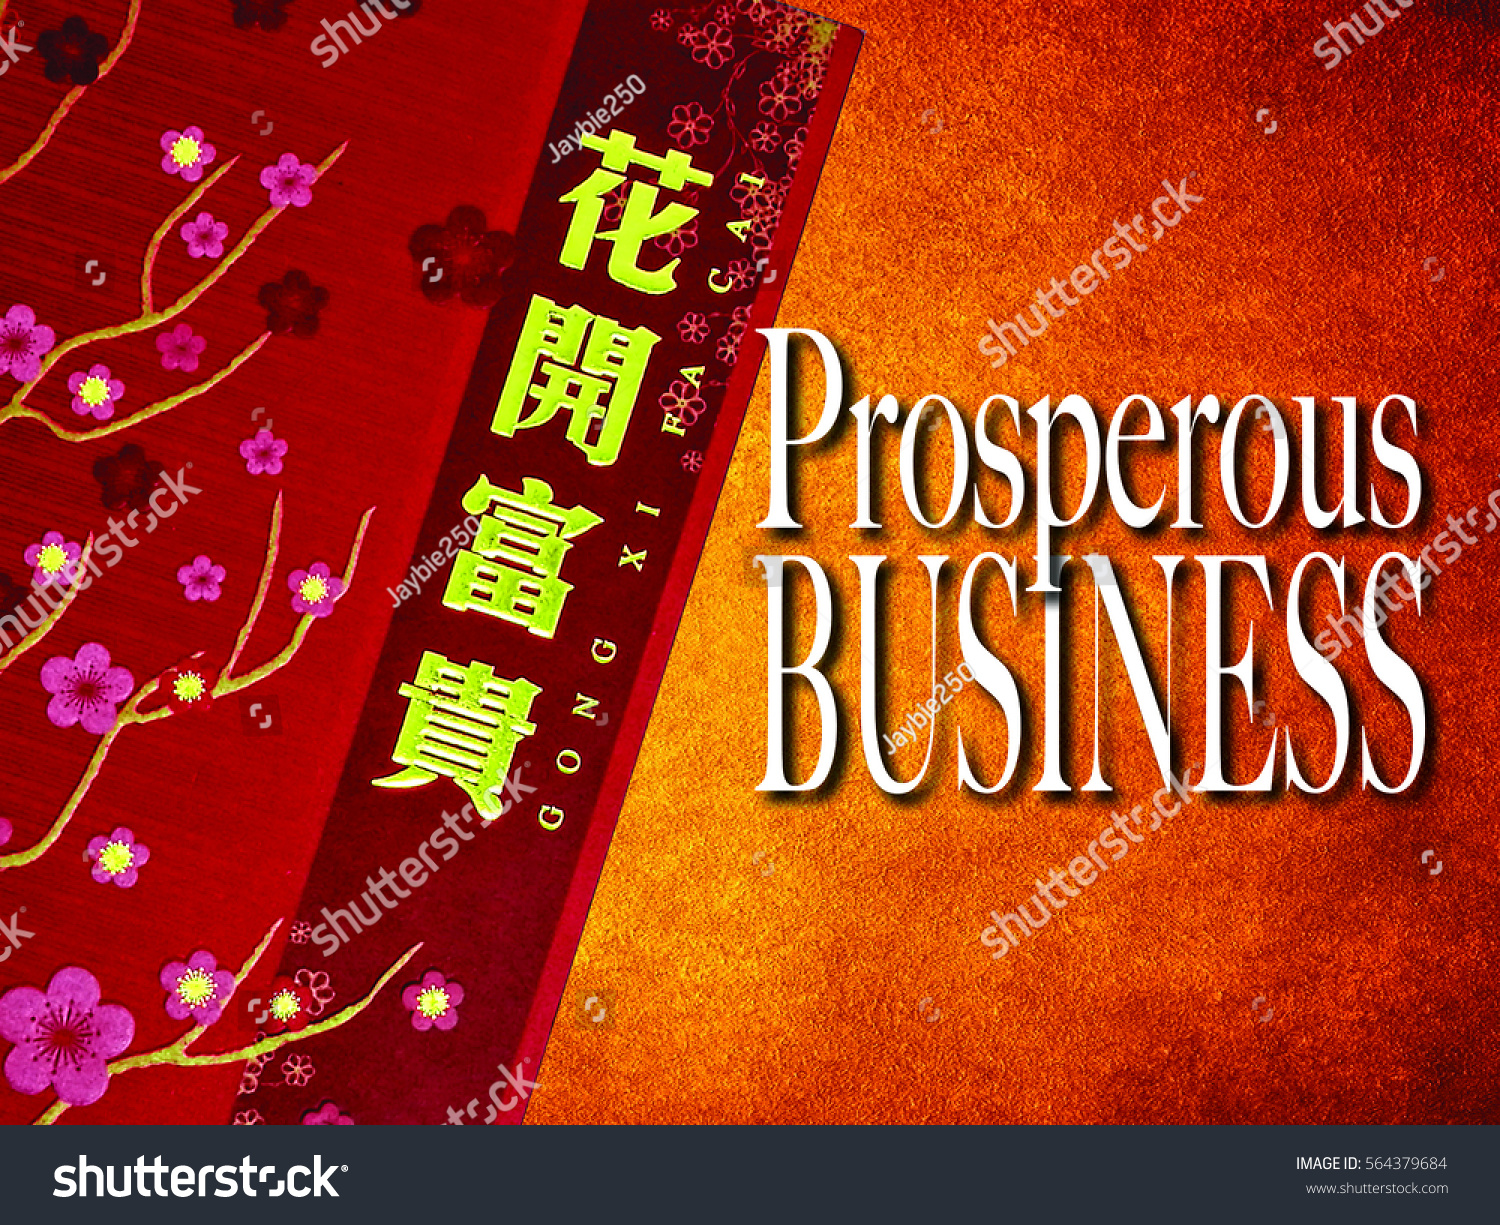 Chinese new year greetings wishes phrases stock photo 564379684 chinese new year greetings and wishes with phrases prosperous business kristyandbryce Choice Image